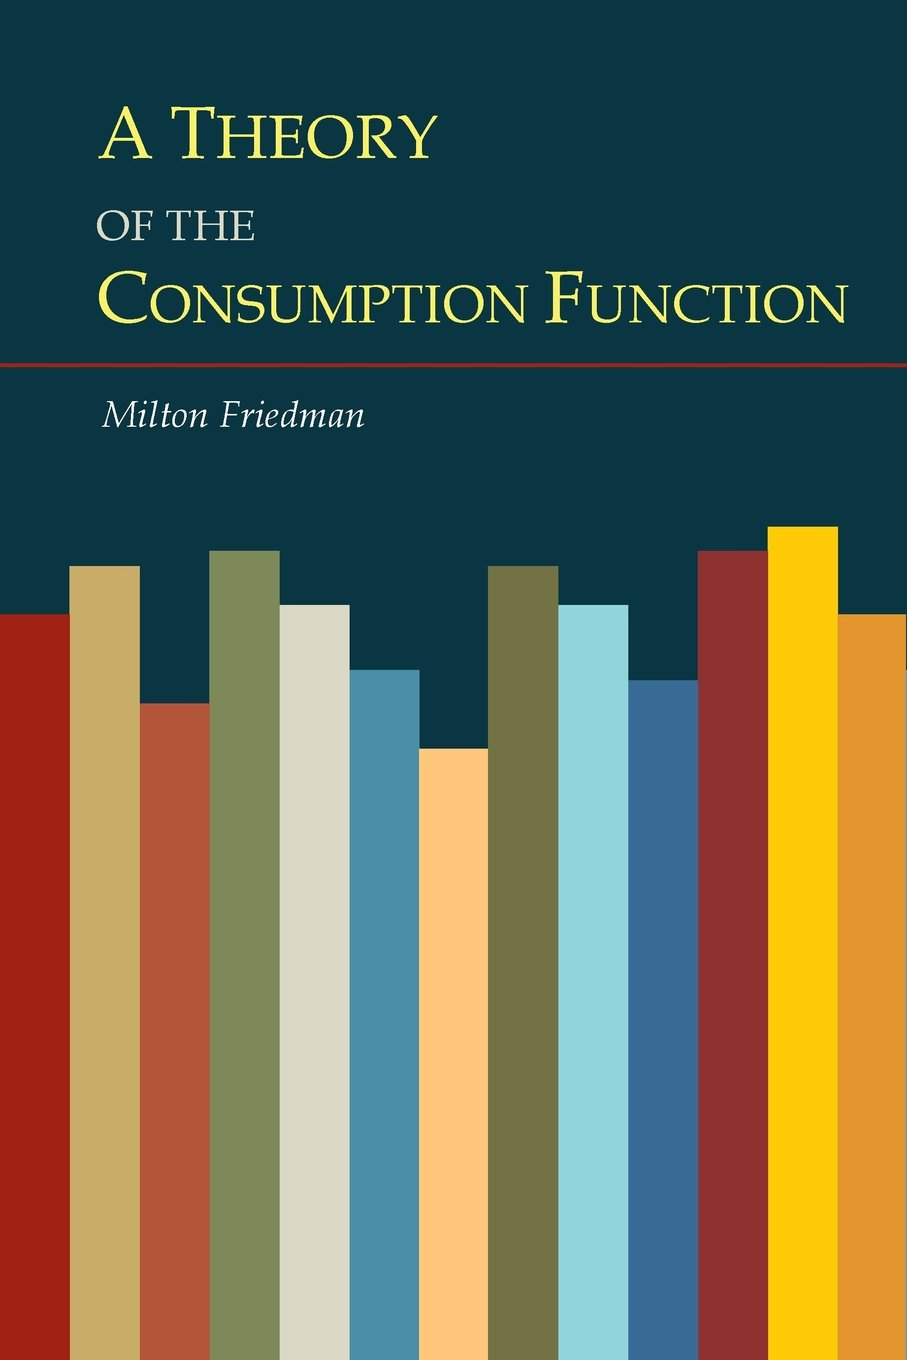 a theory of the consumption function milton friedman a theory of the consumption function milton friedman 9781614278122 amazon com books